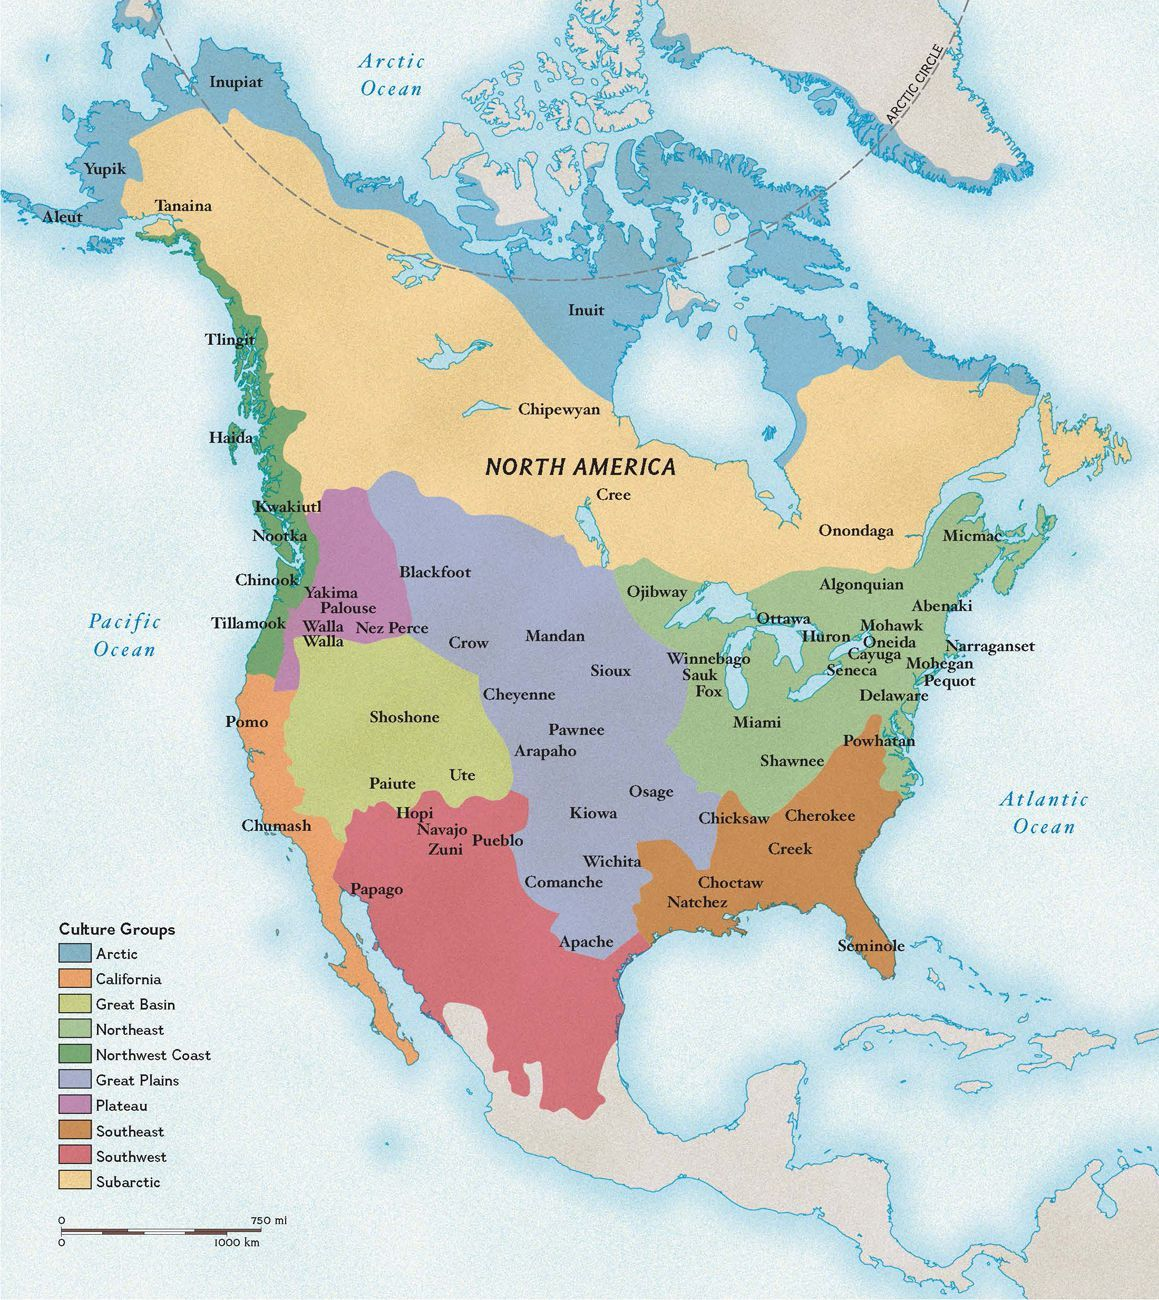 This map show the major Native American cultural regions in the